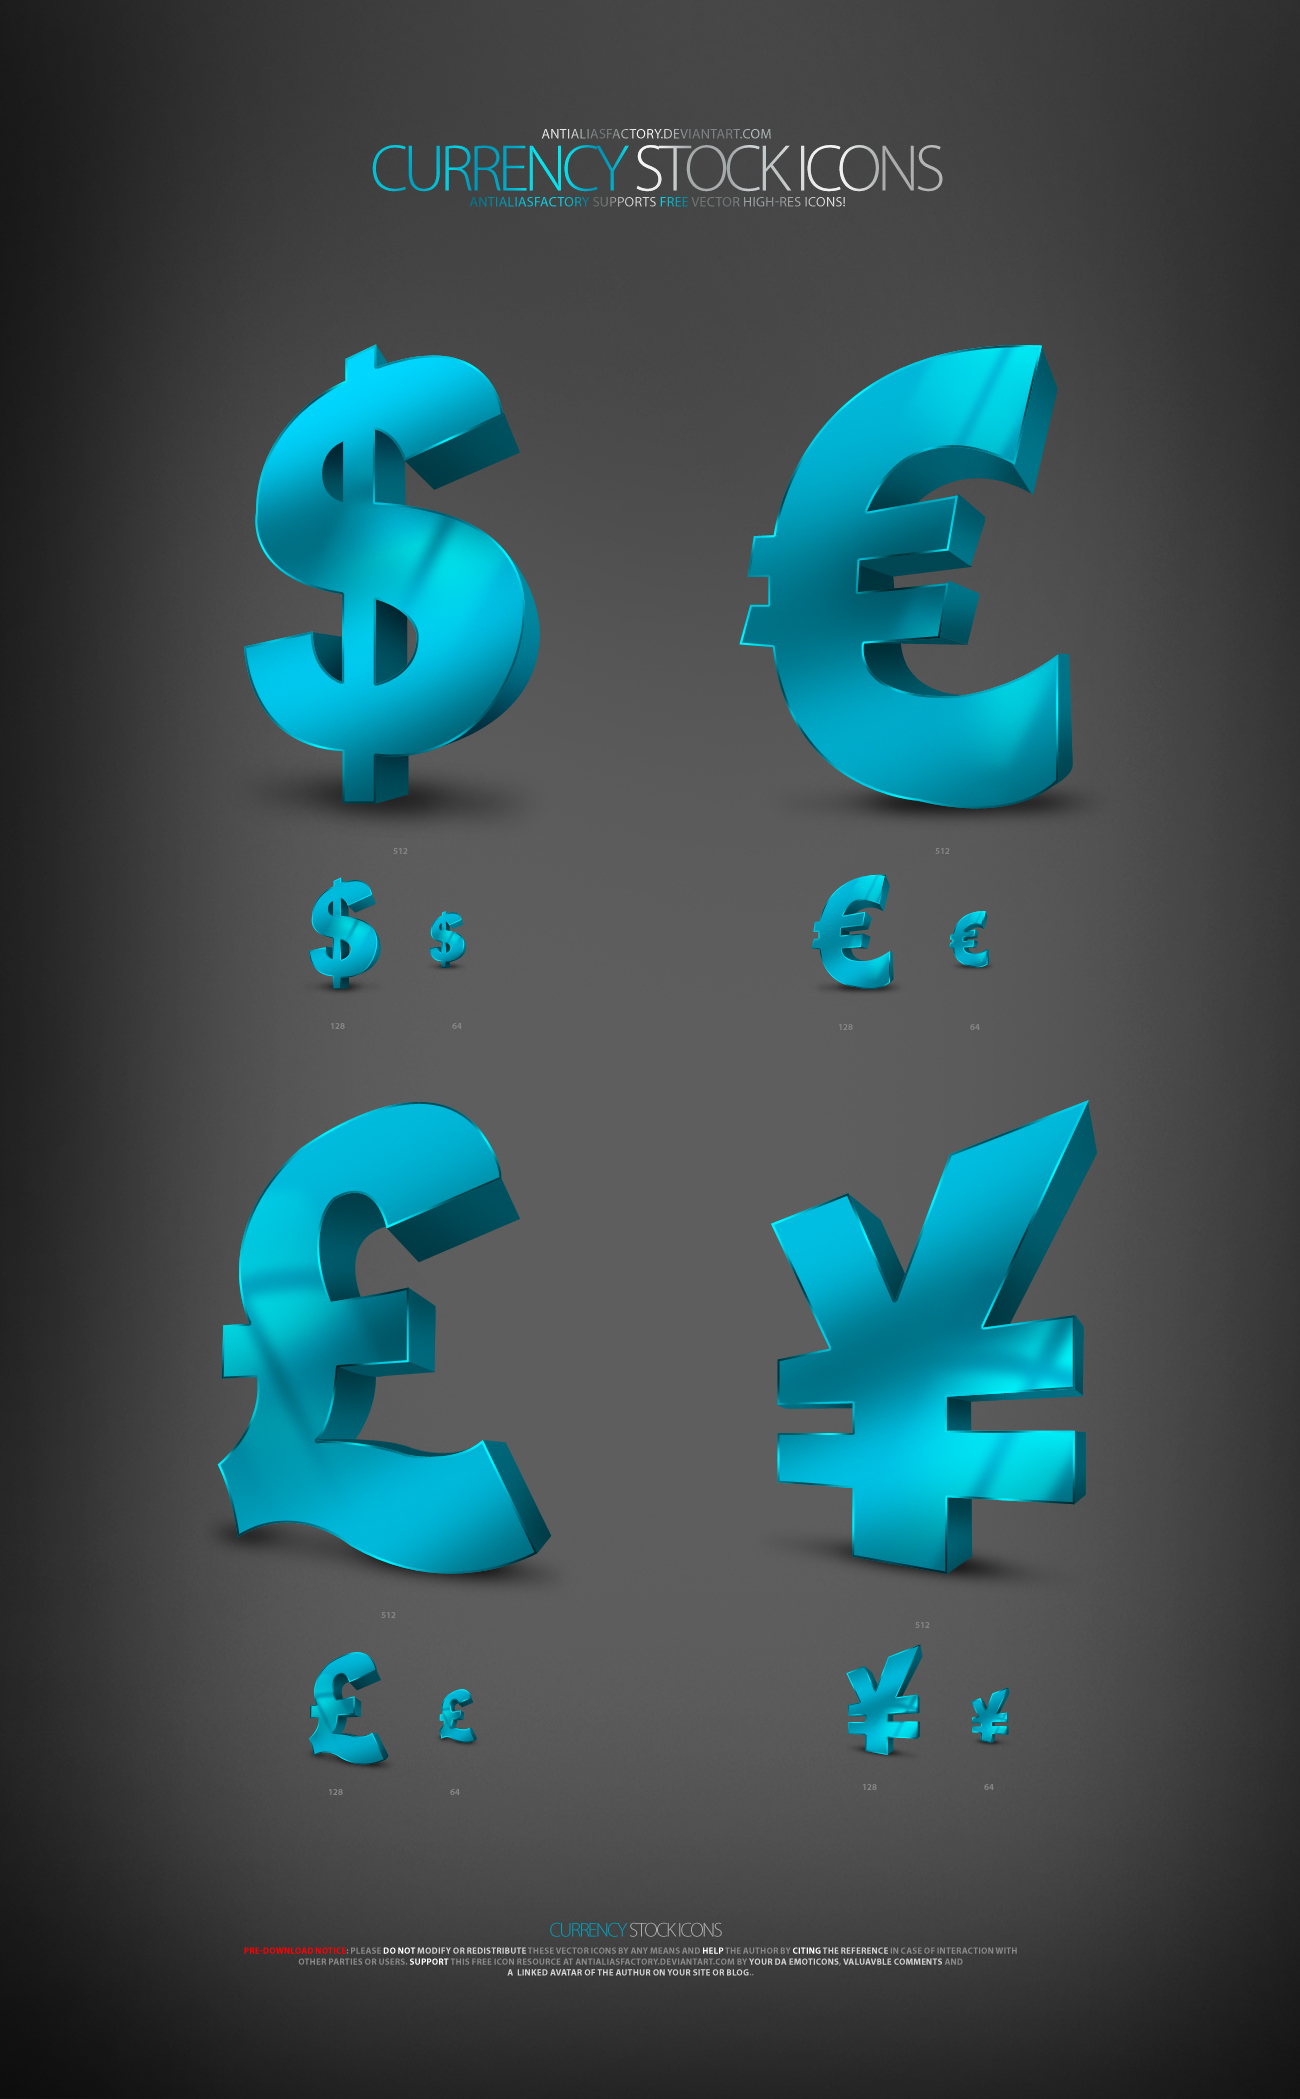 4 currency symbols (3D crystal texture of the icon)